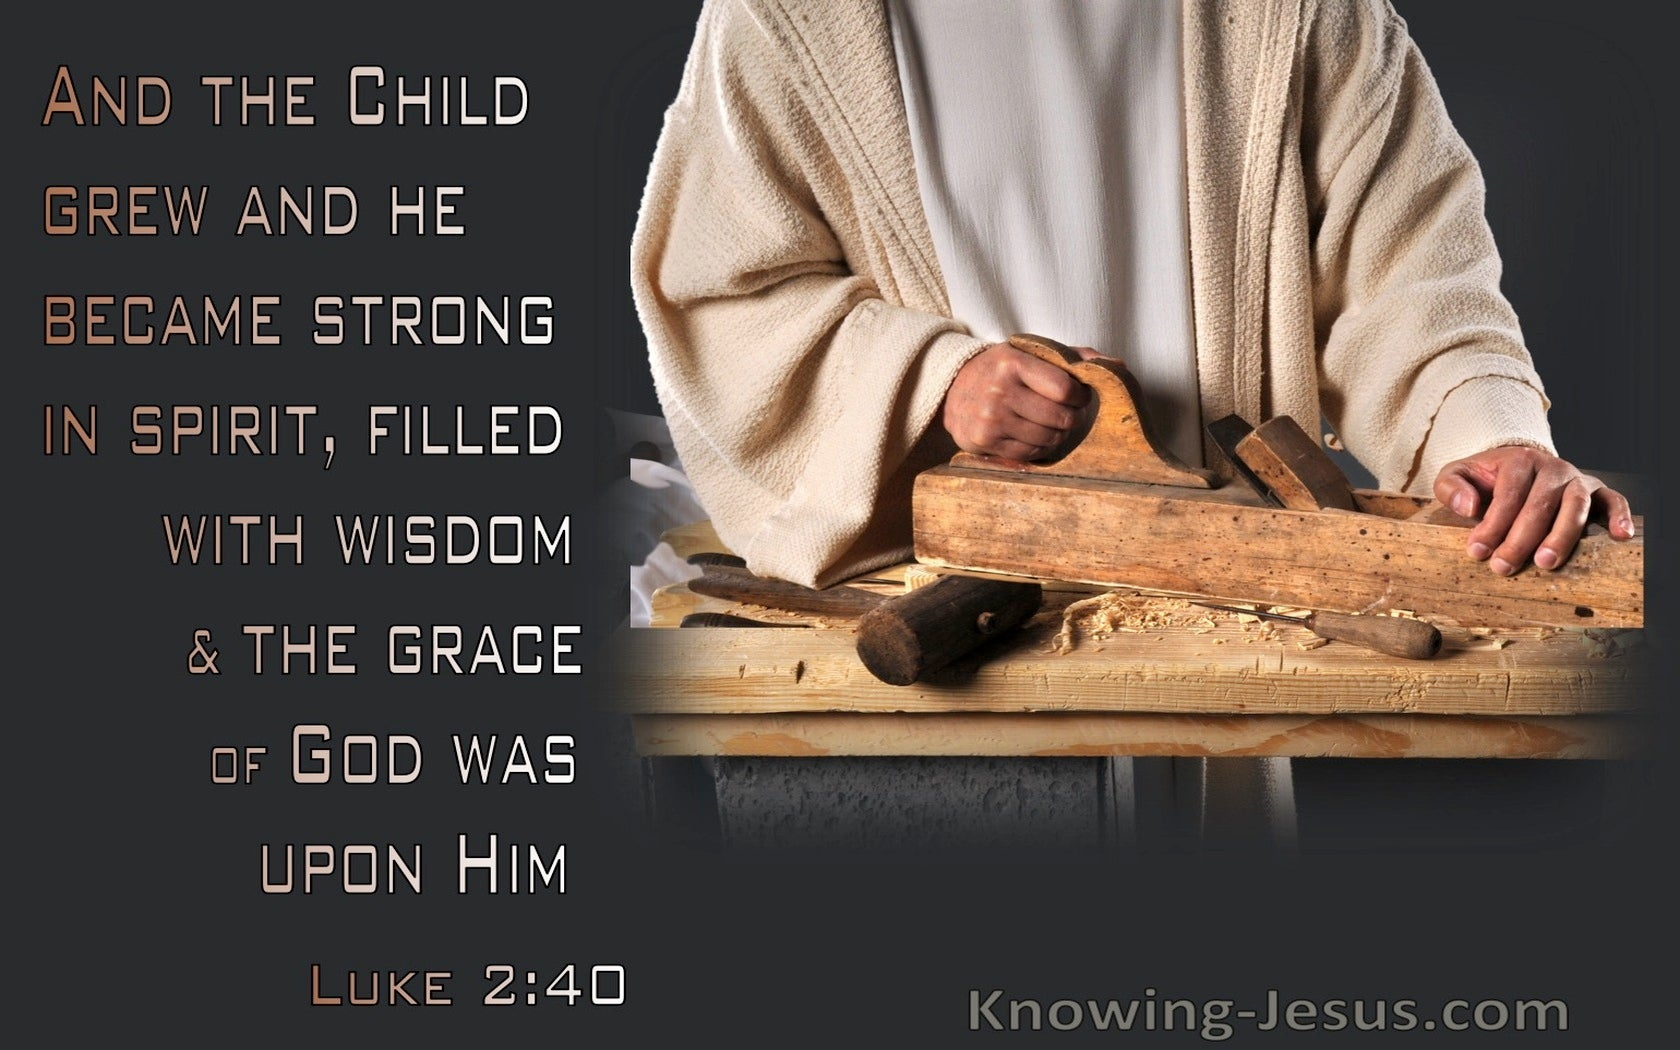 Luke 2:40 The Child Grew And Became Strong And Increase In Wisdom (beige)